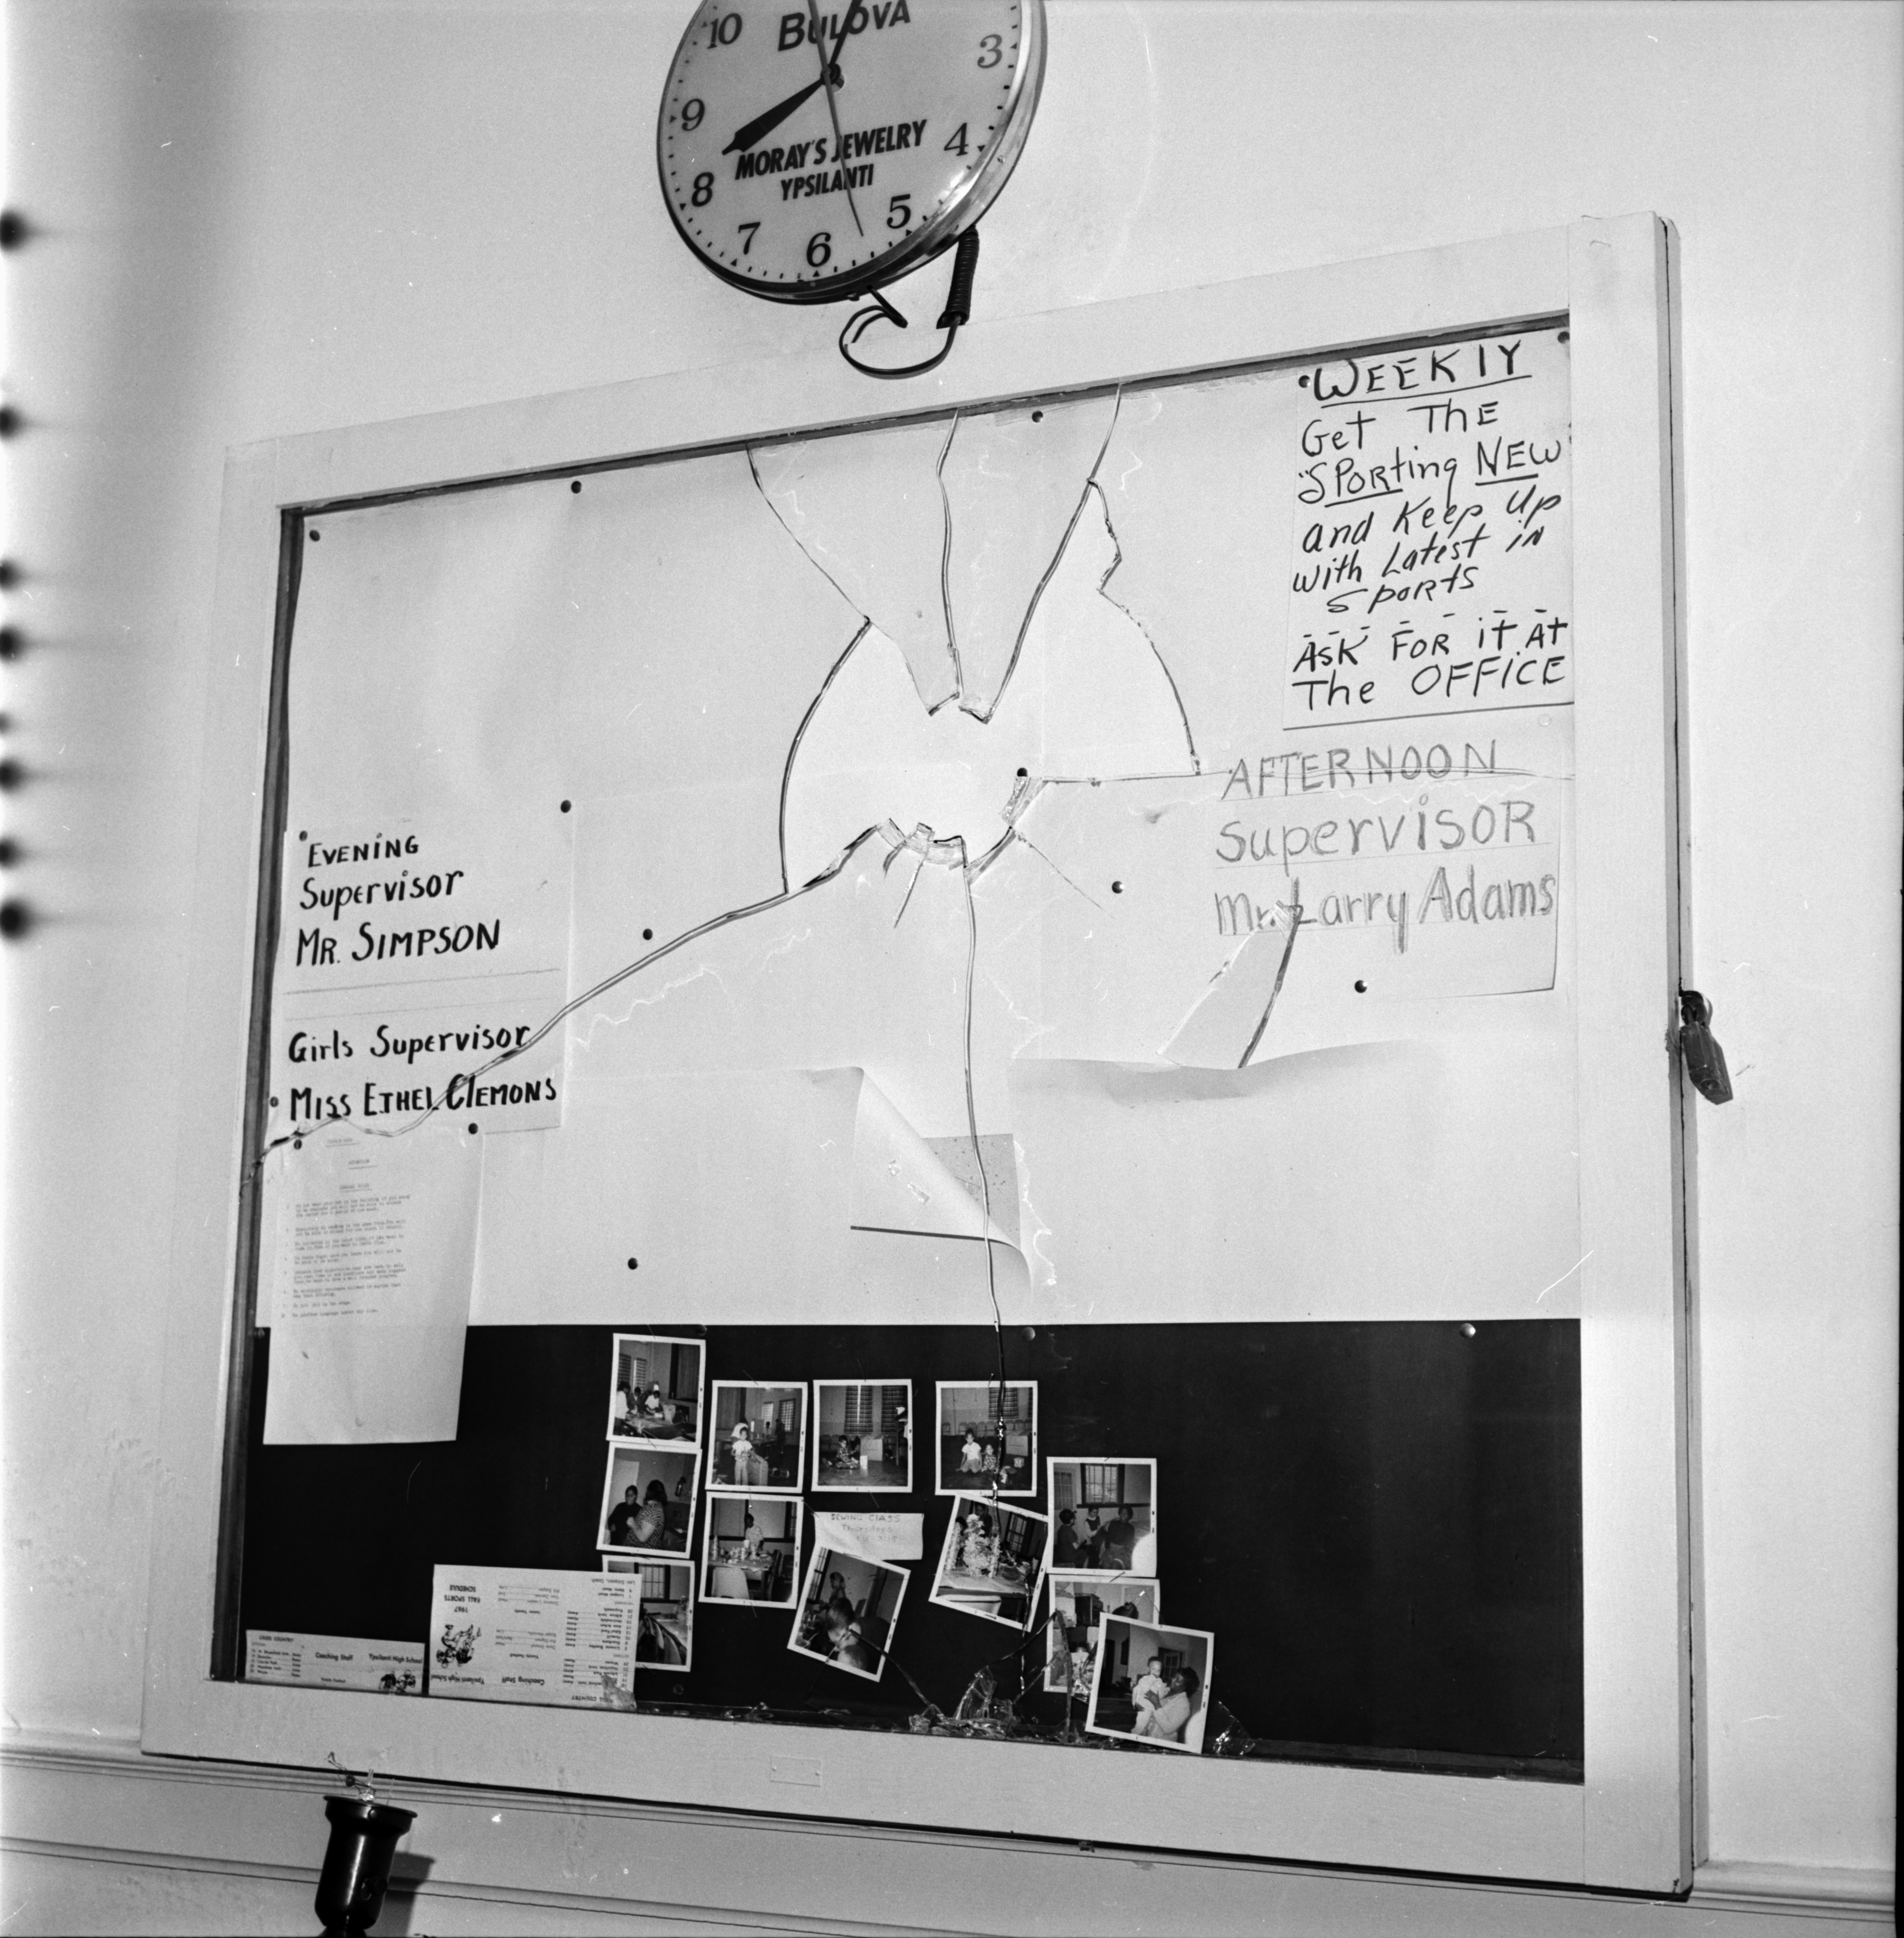 Message Board Damaged by Vandalism at Parkridge Community Center, October 1967 image